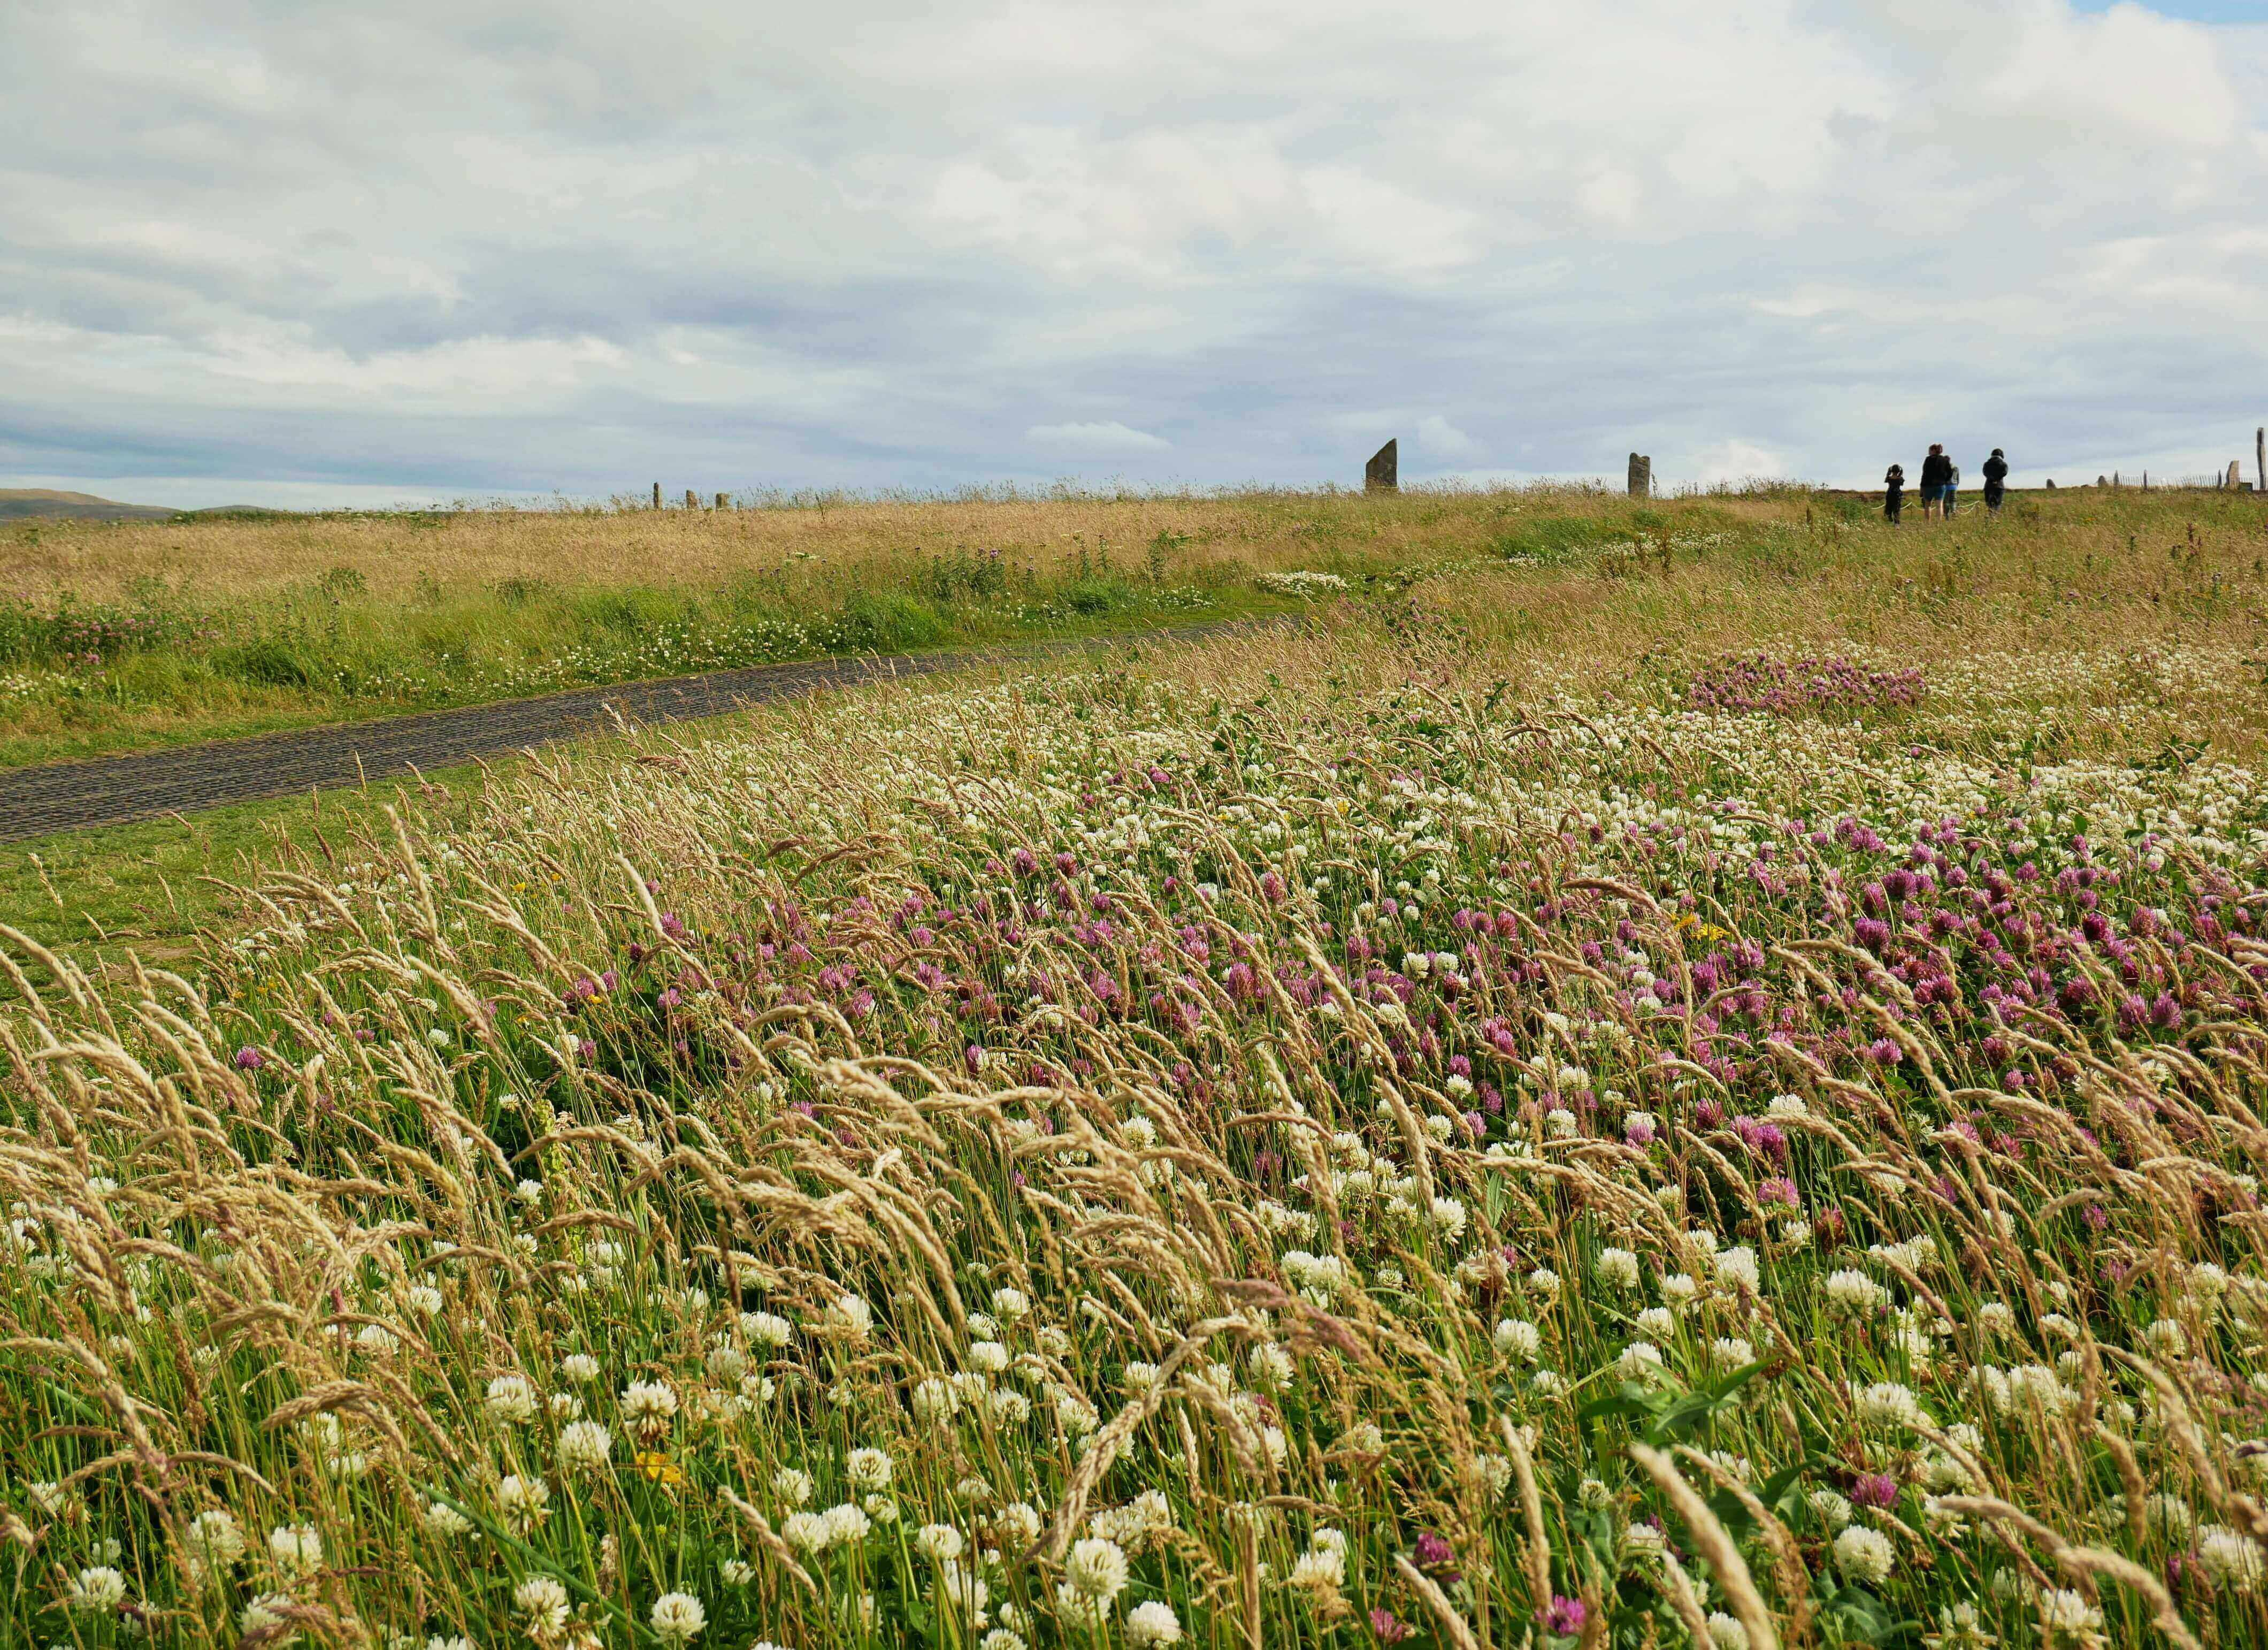 Fields of clover surround the standing stones at Brodgar, Orkney Islands, Scotland, UK. www.orkneyology.com